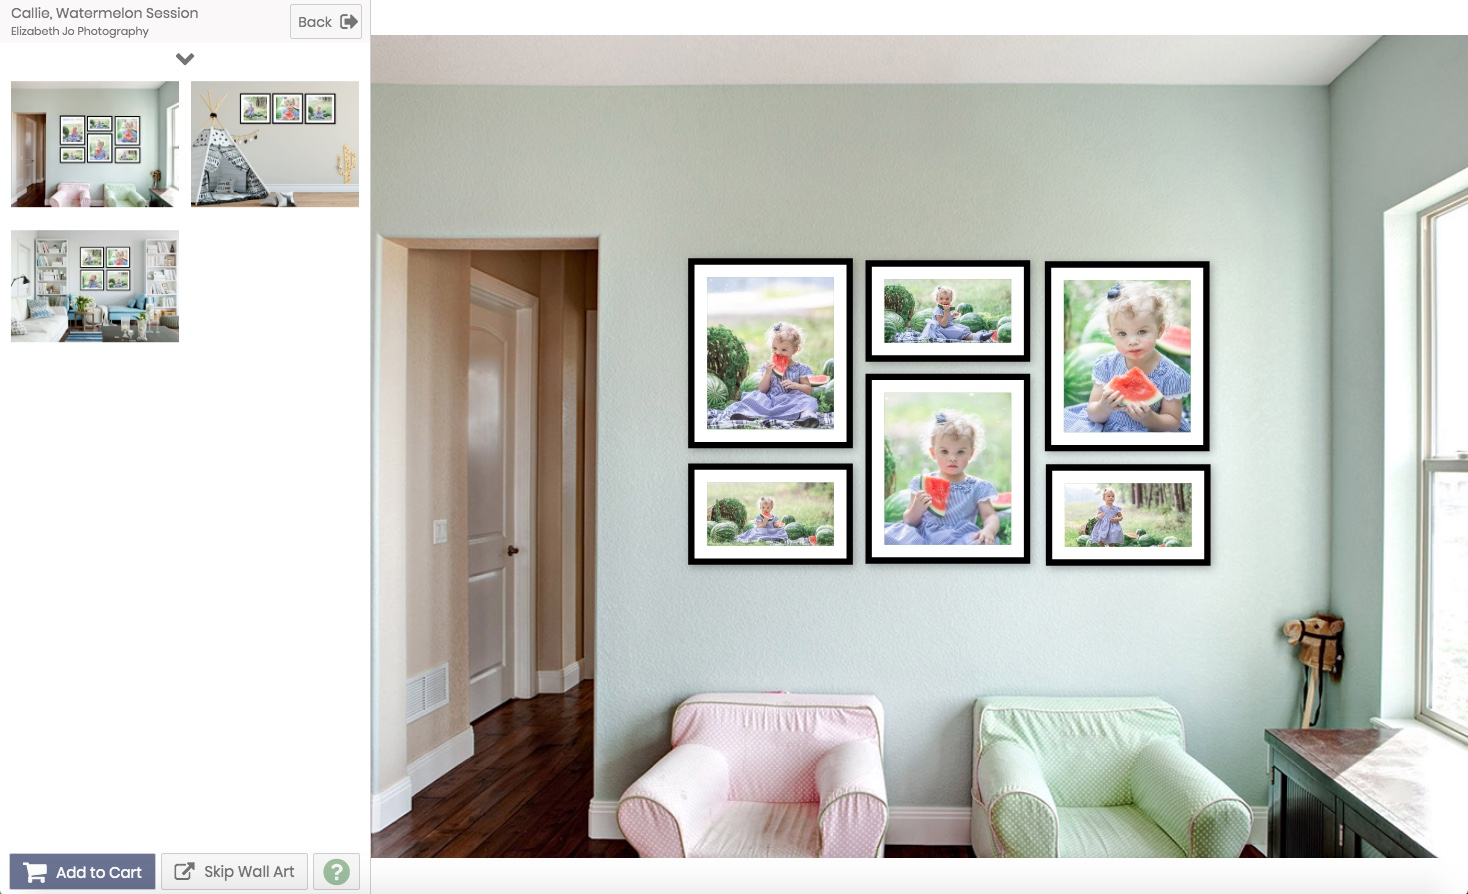 - This amazing program I walk you through during our viewing session can show you exactly what an image will look like on your wall before you even make a purchase! Everything is to scale so you know what size will look best in your space.